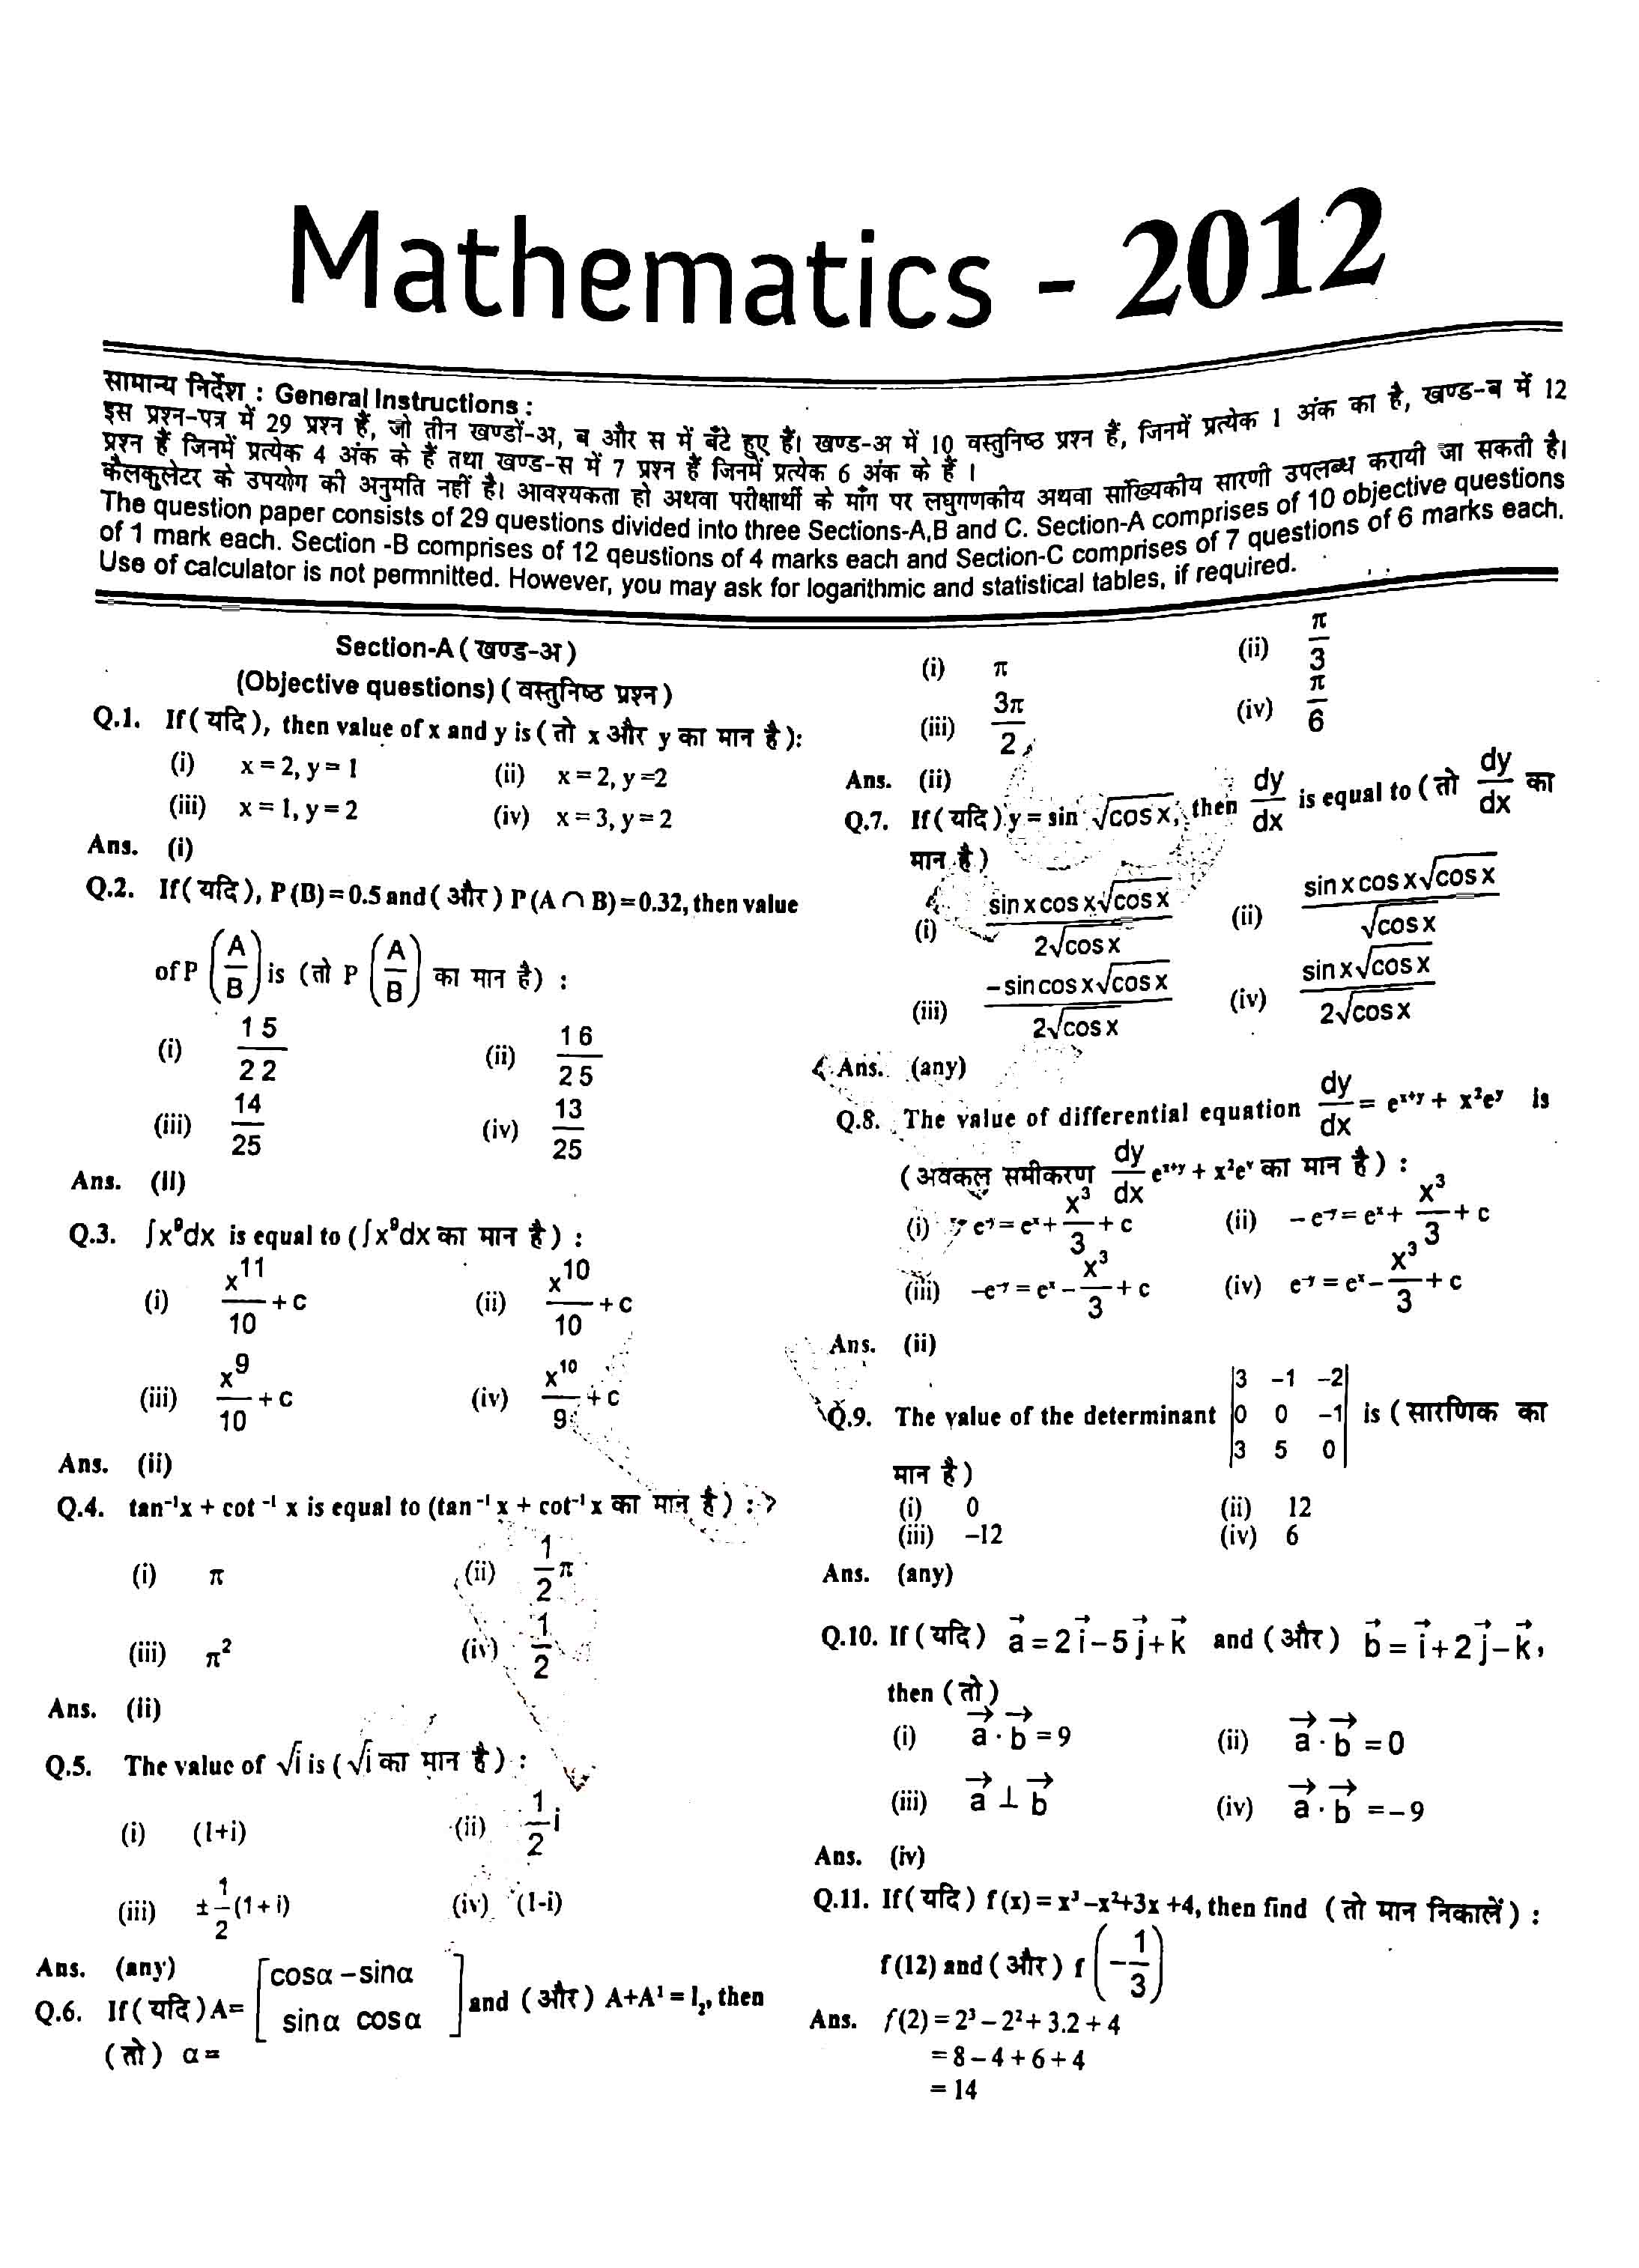 JAC Class 12 math 2012 Question Paper 01